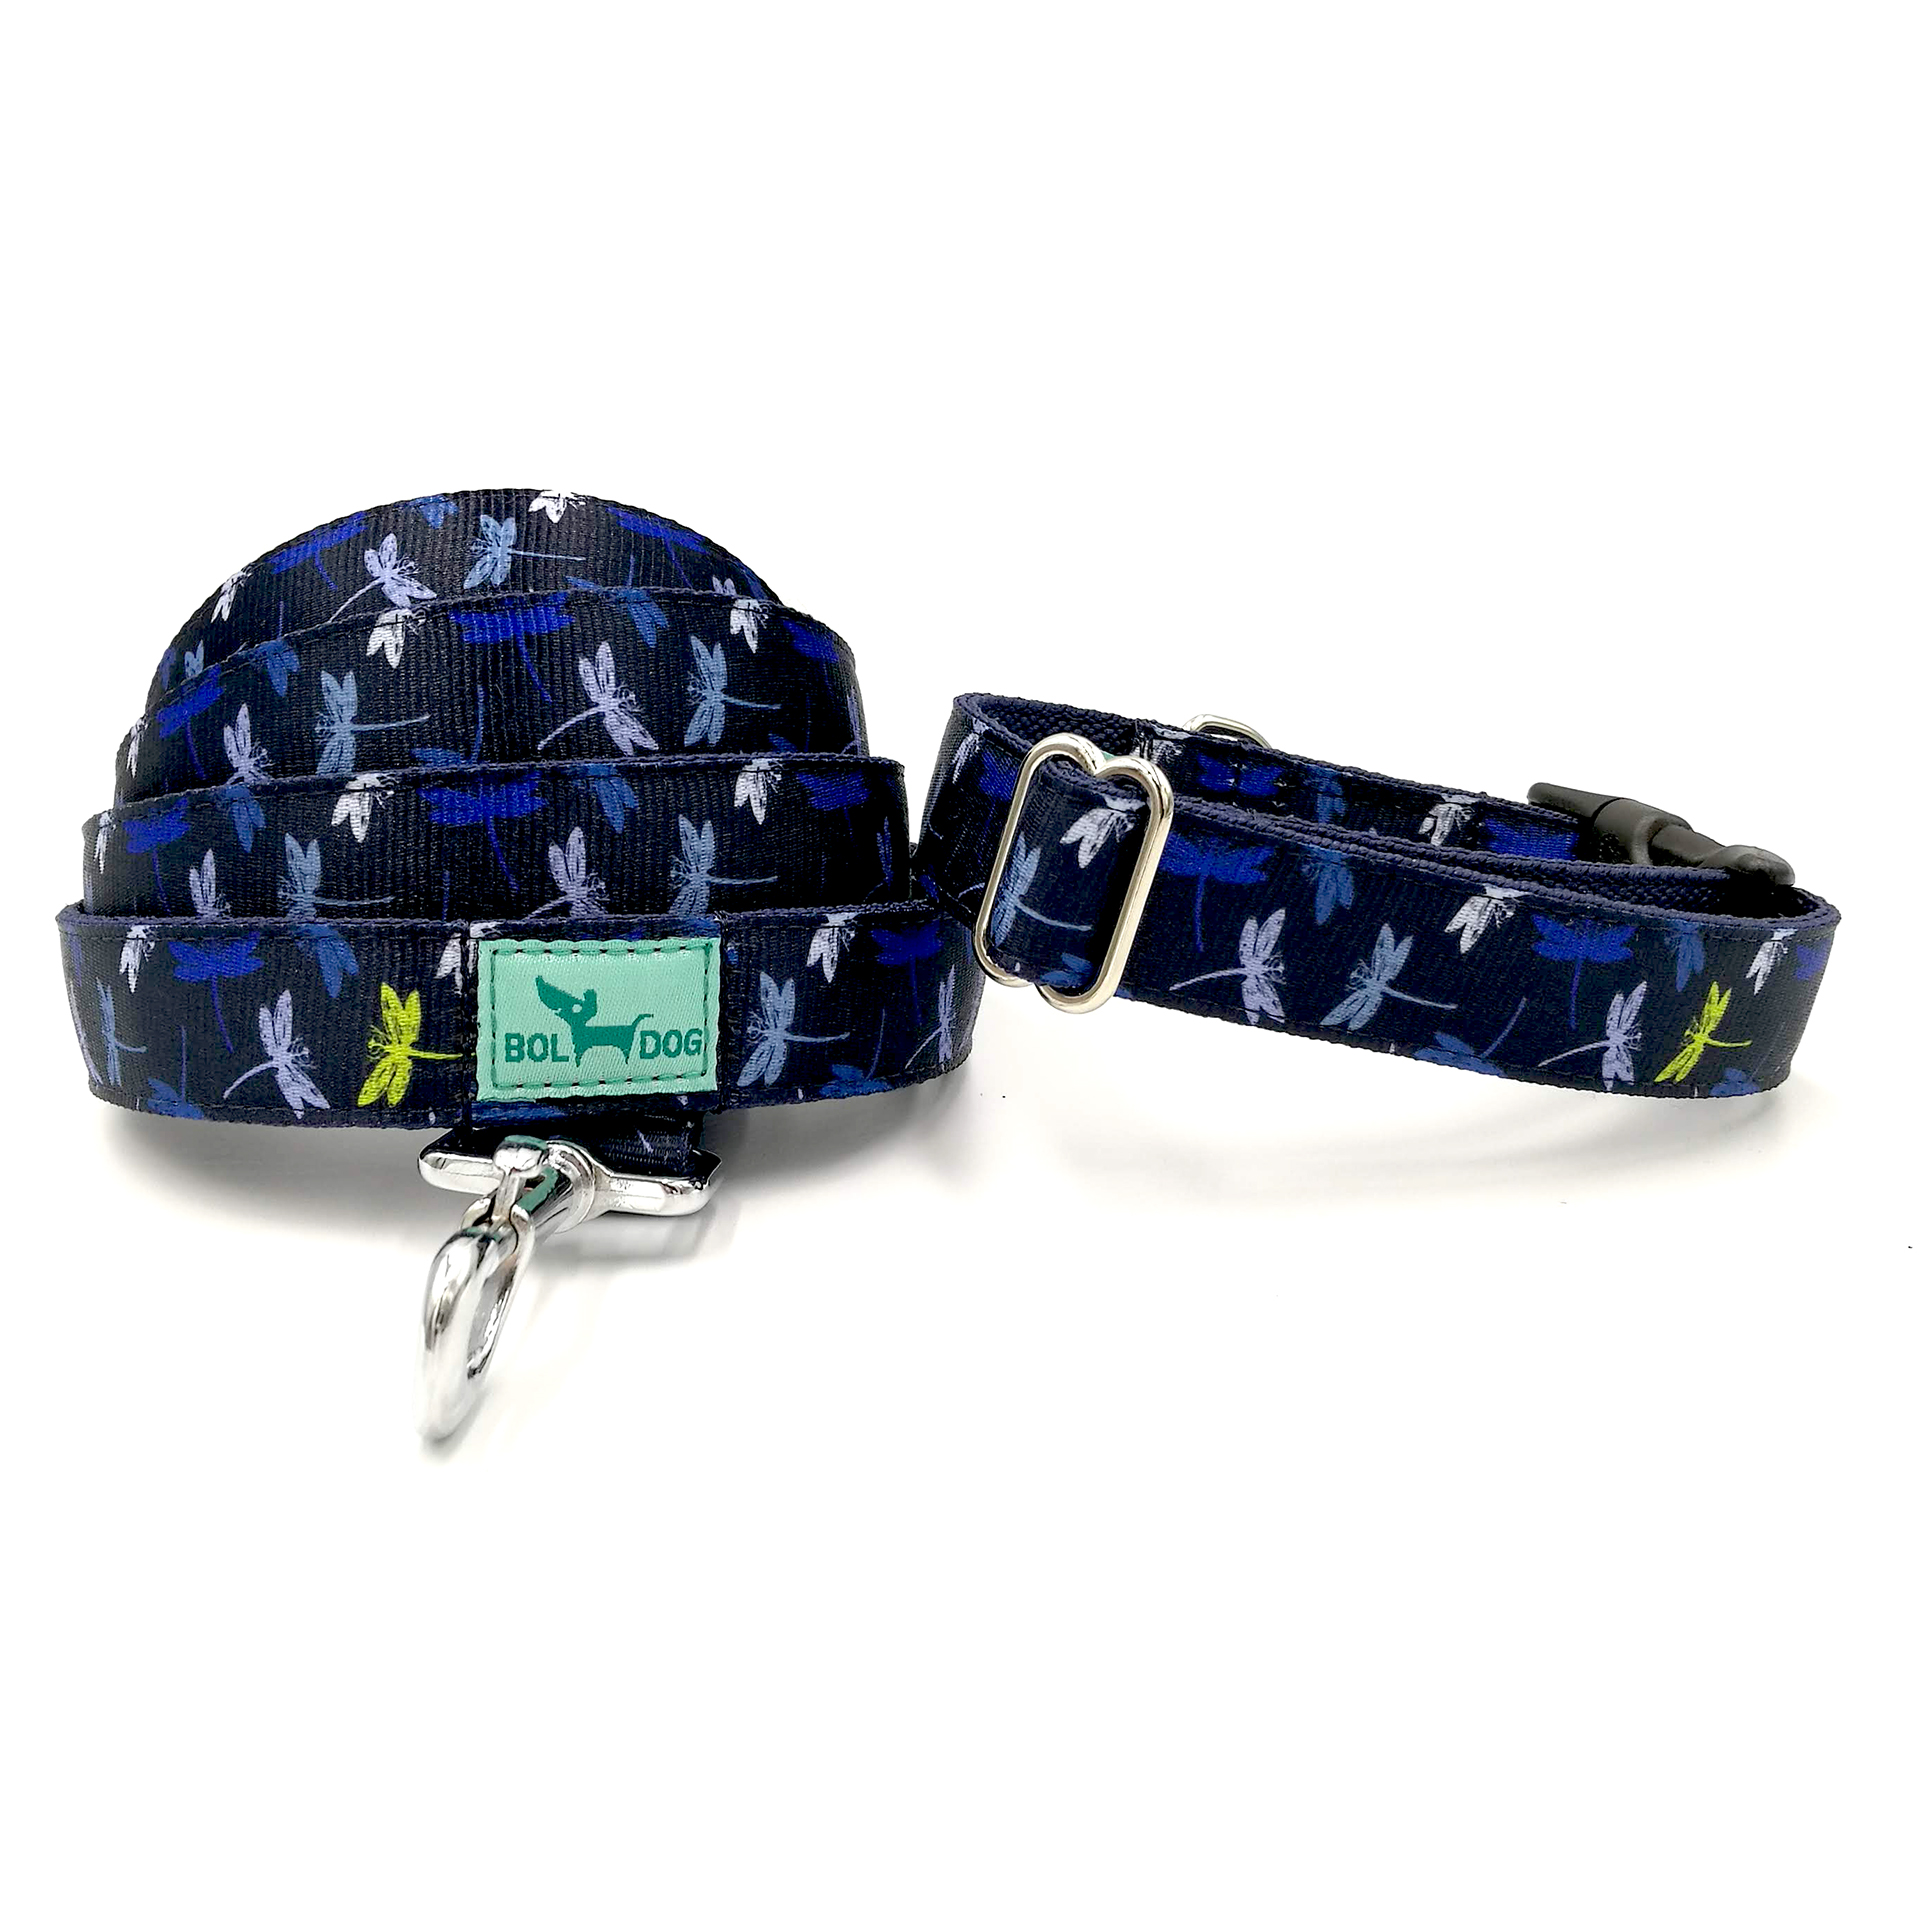 Dragonfly patterned leash